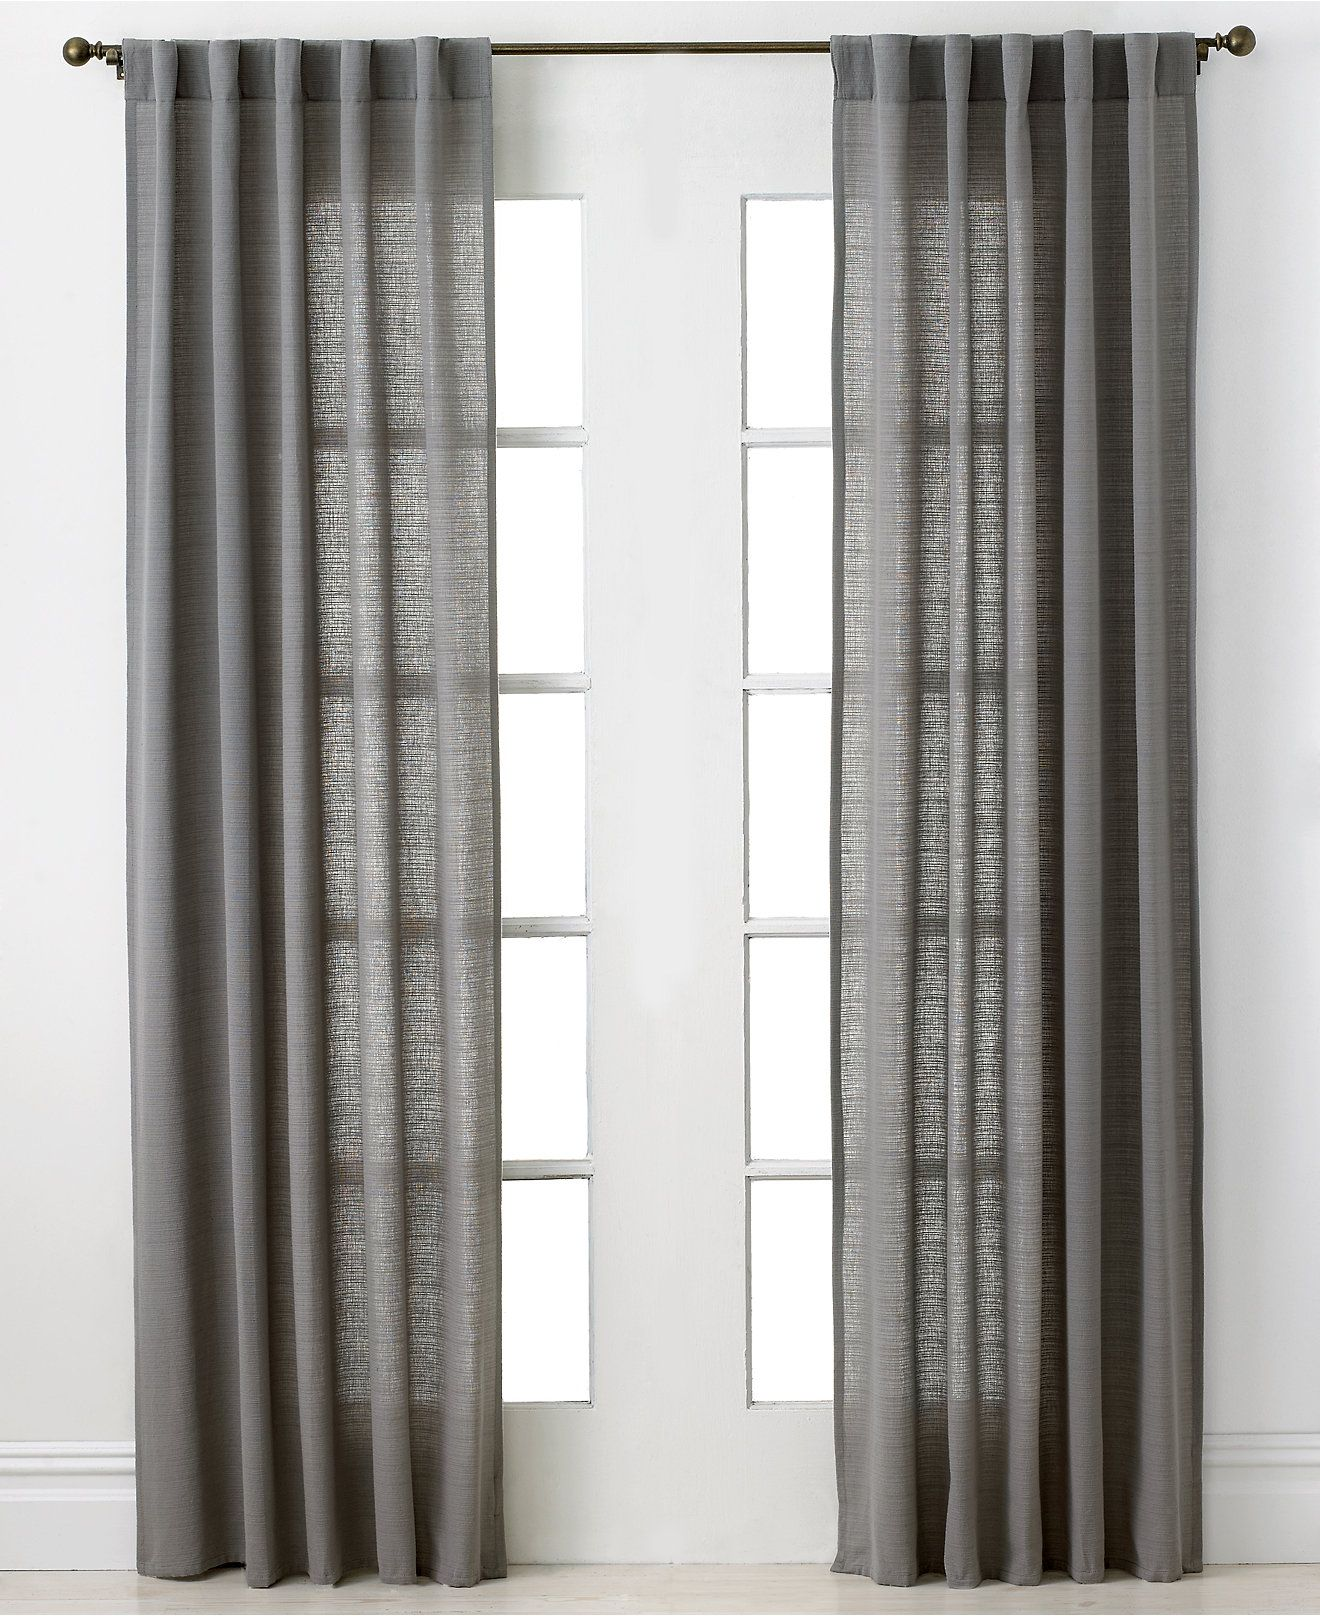 Park B Smith Sheer Thai 40 X 84 Panel Curtains Drapes For